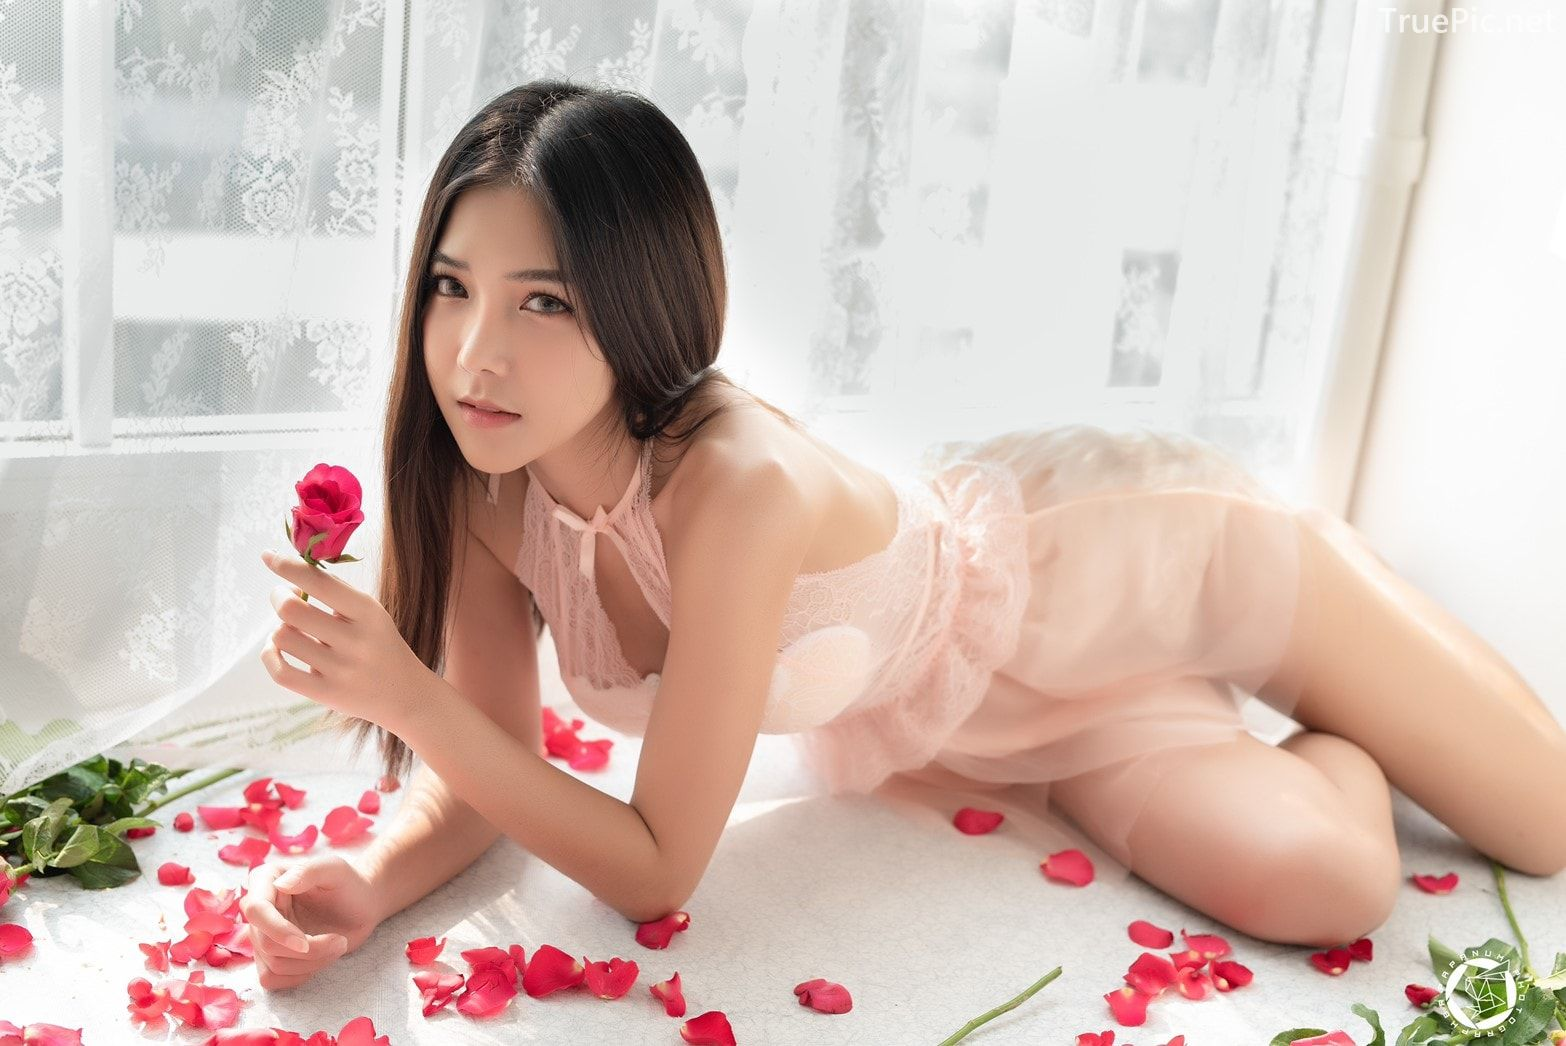 Thailand Model - Phitchamol Srijantanet - Roses for Lovers - TruePic.net - Picture 2